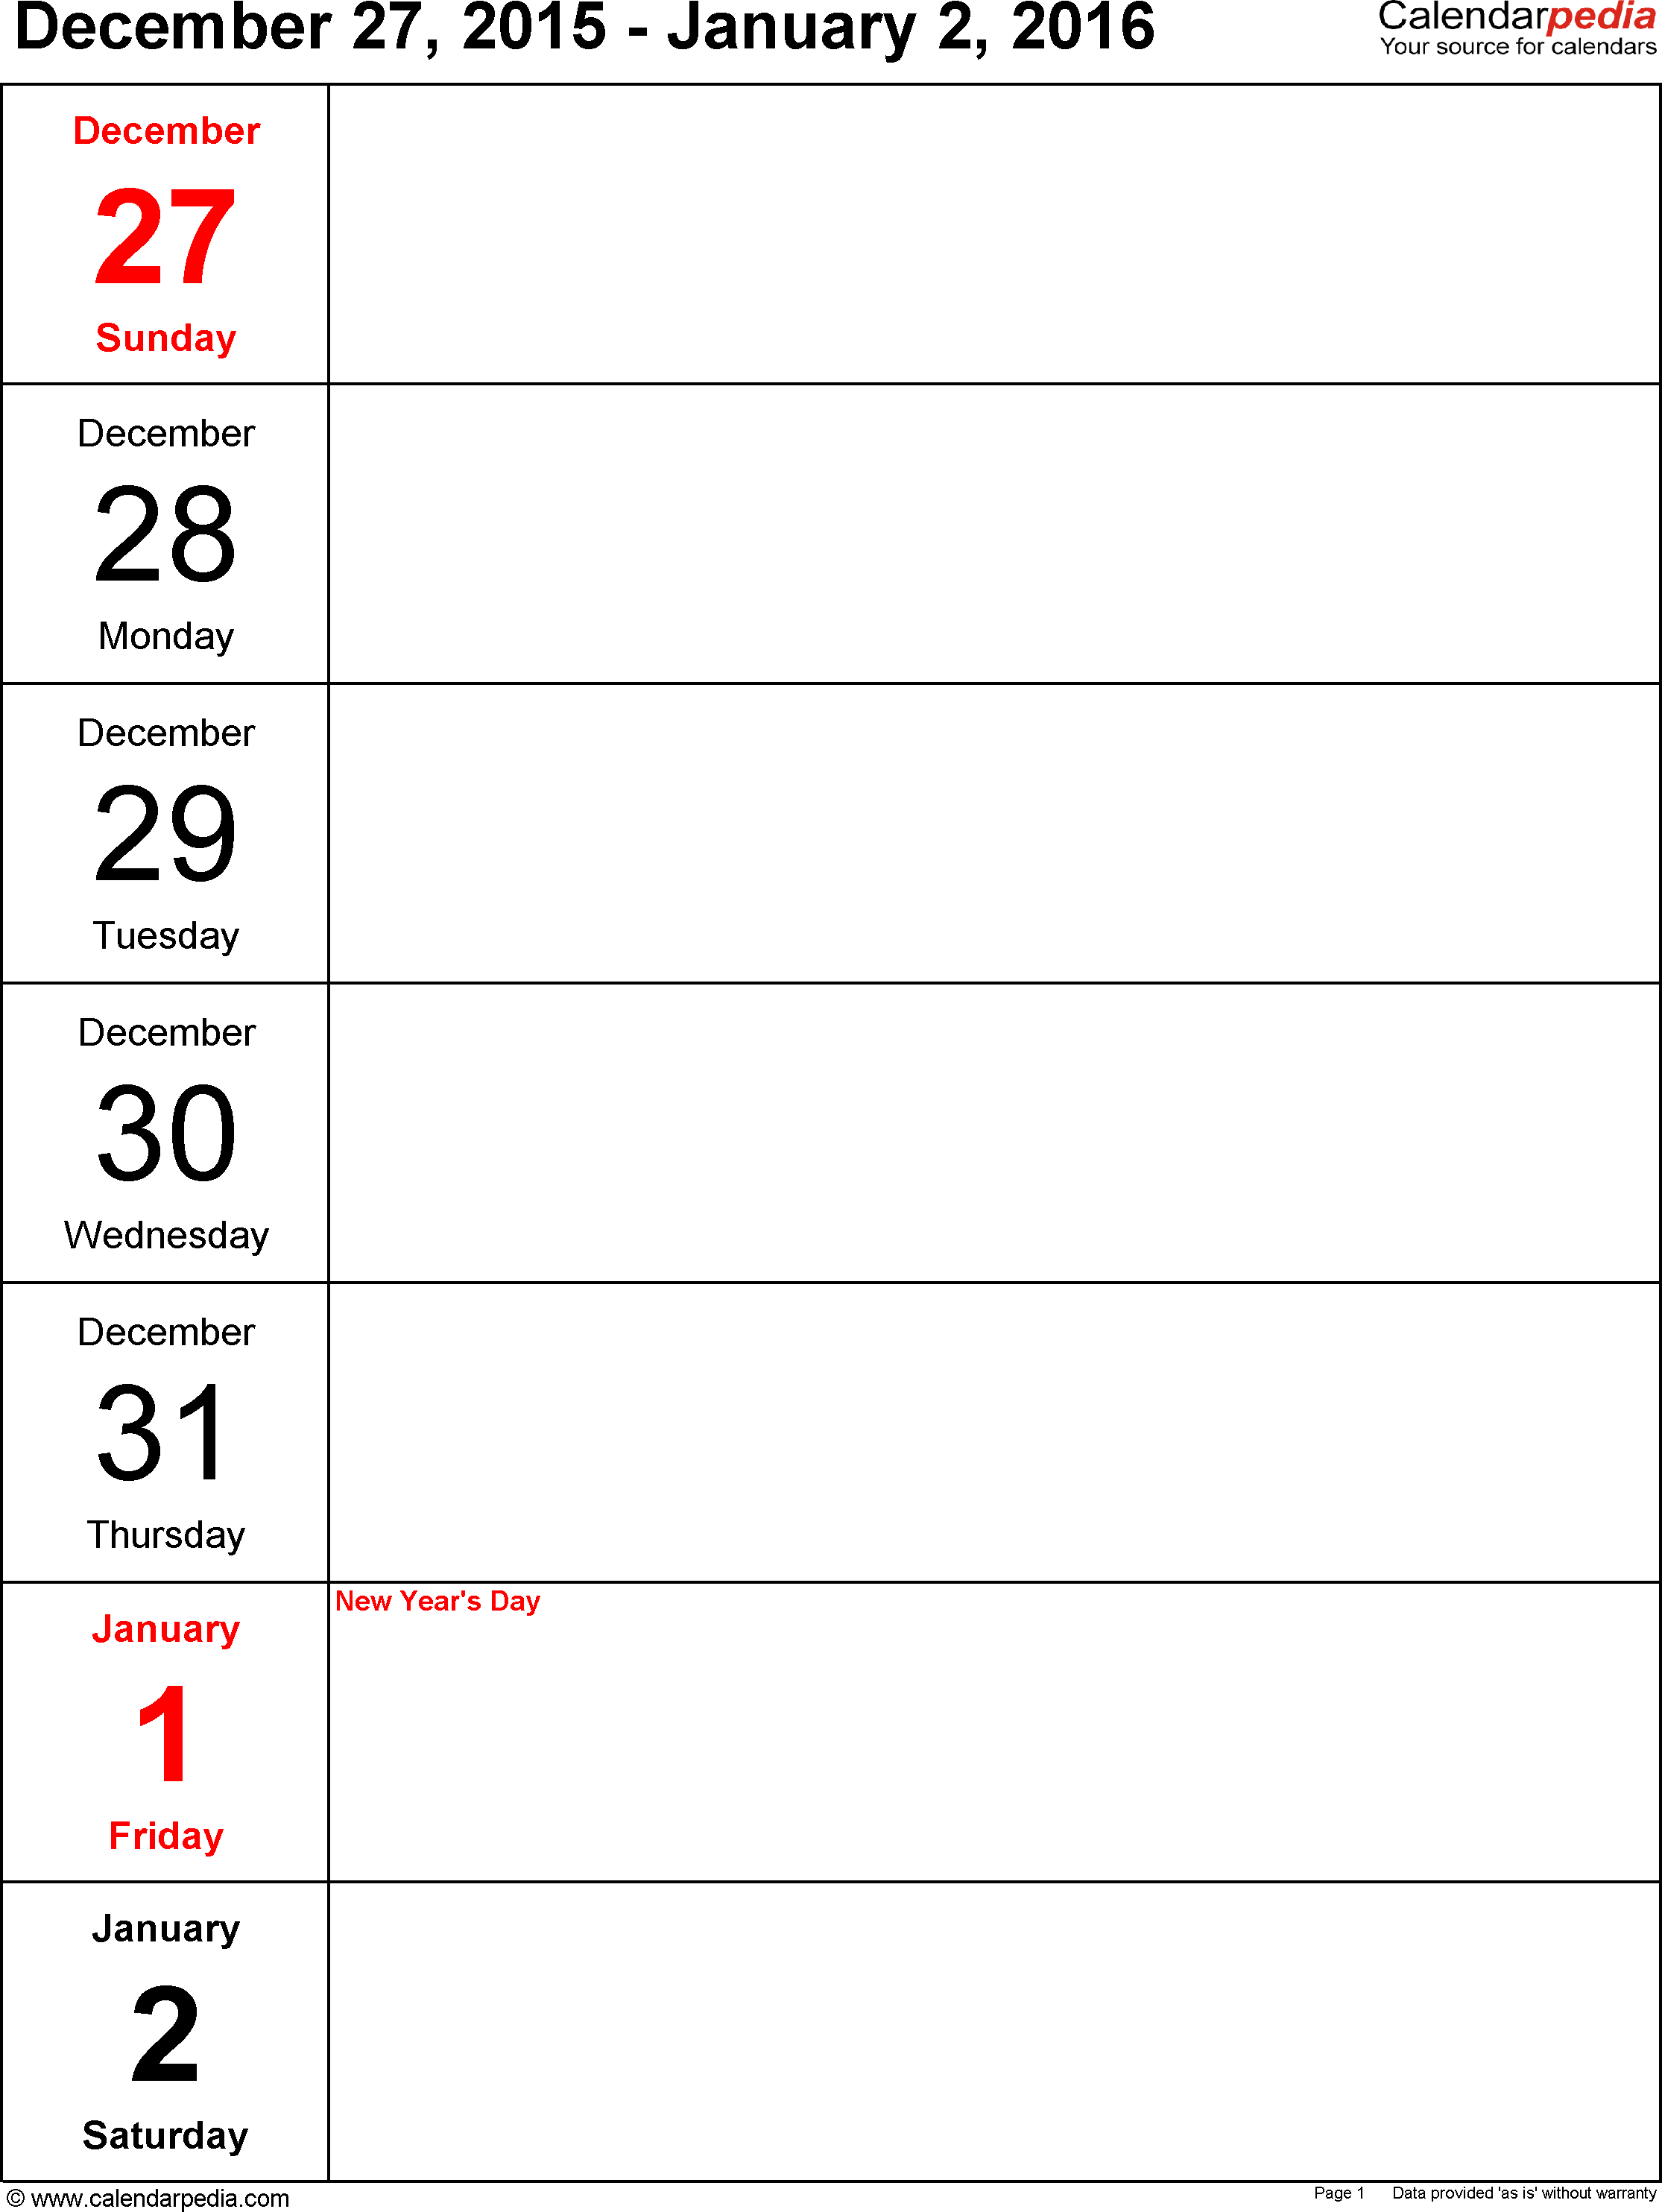 Weekly calendar 2016: template for PDF version 10, portrait, 53 pages, days vertically, great for a weekly diary